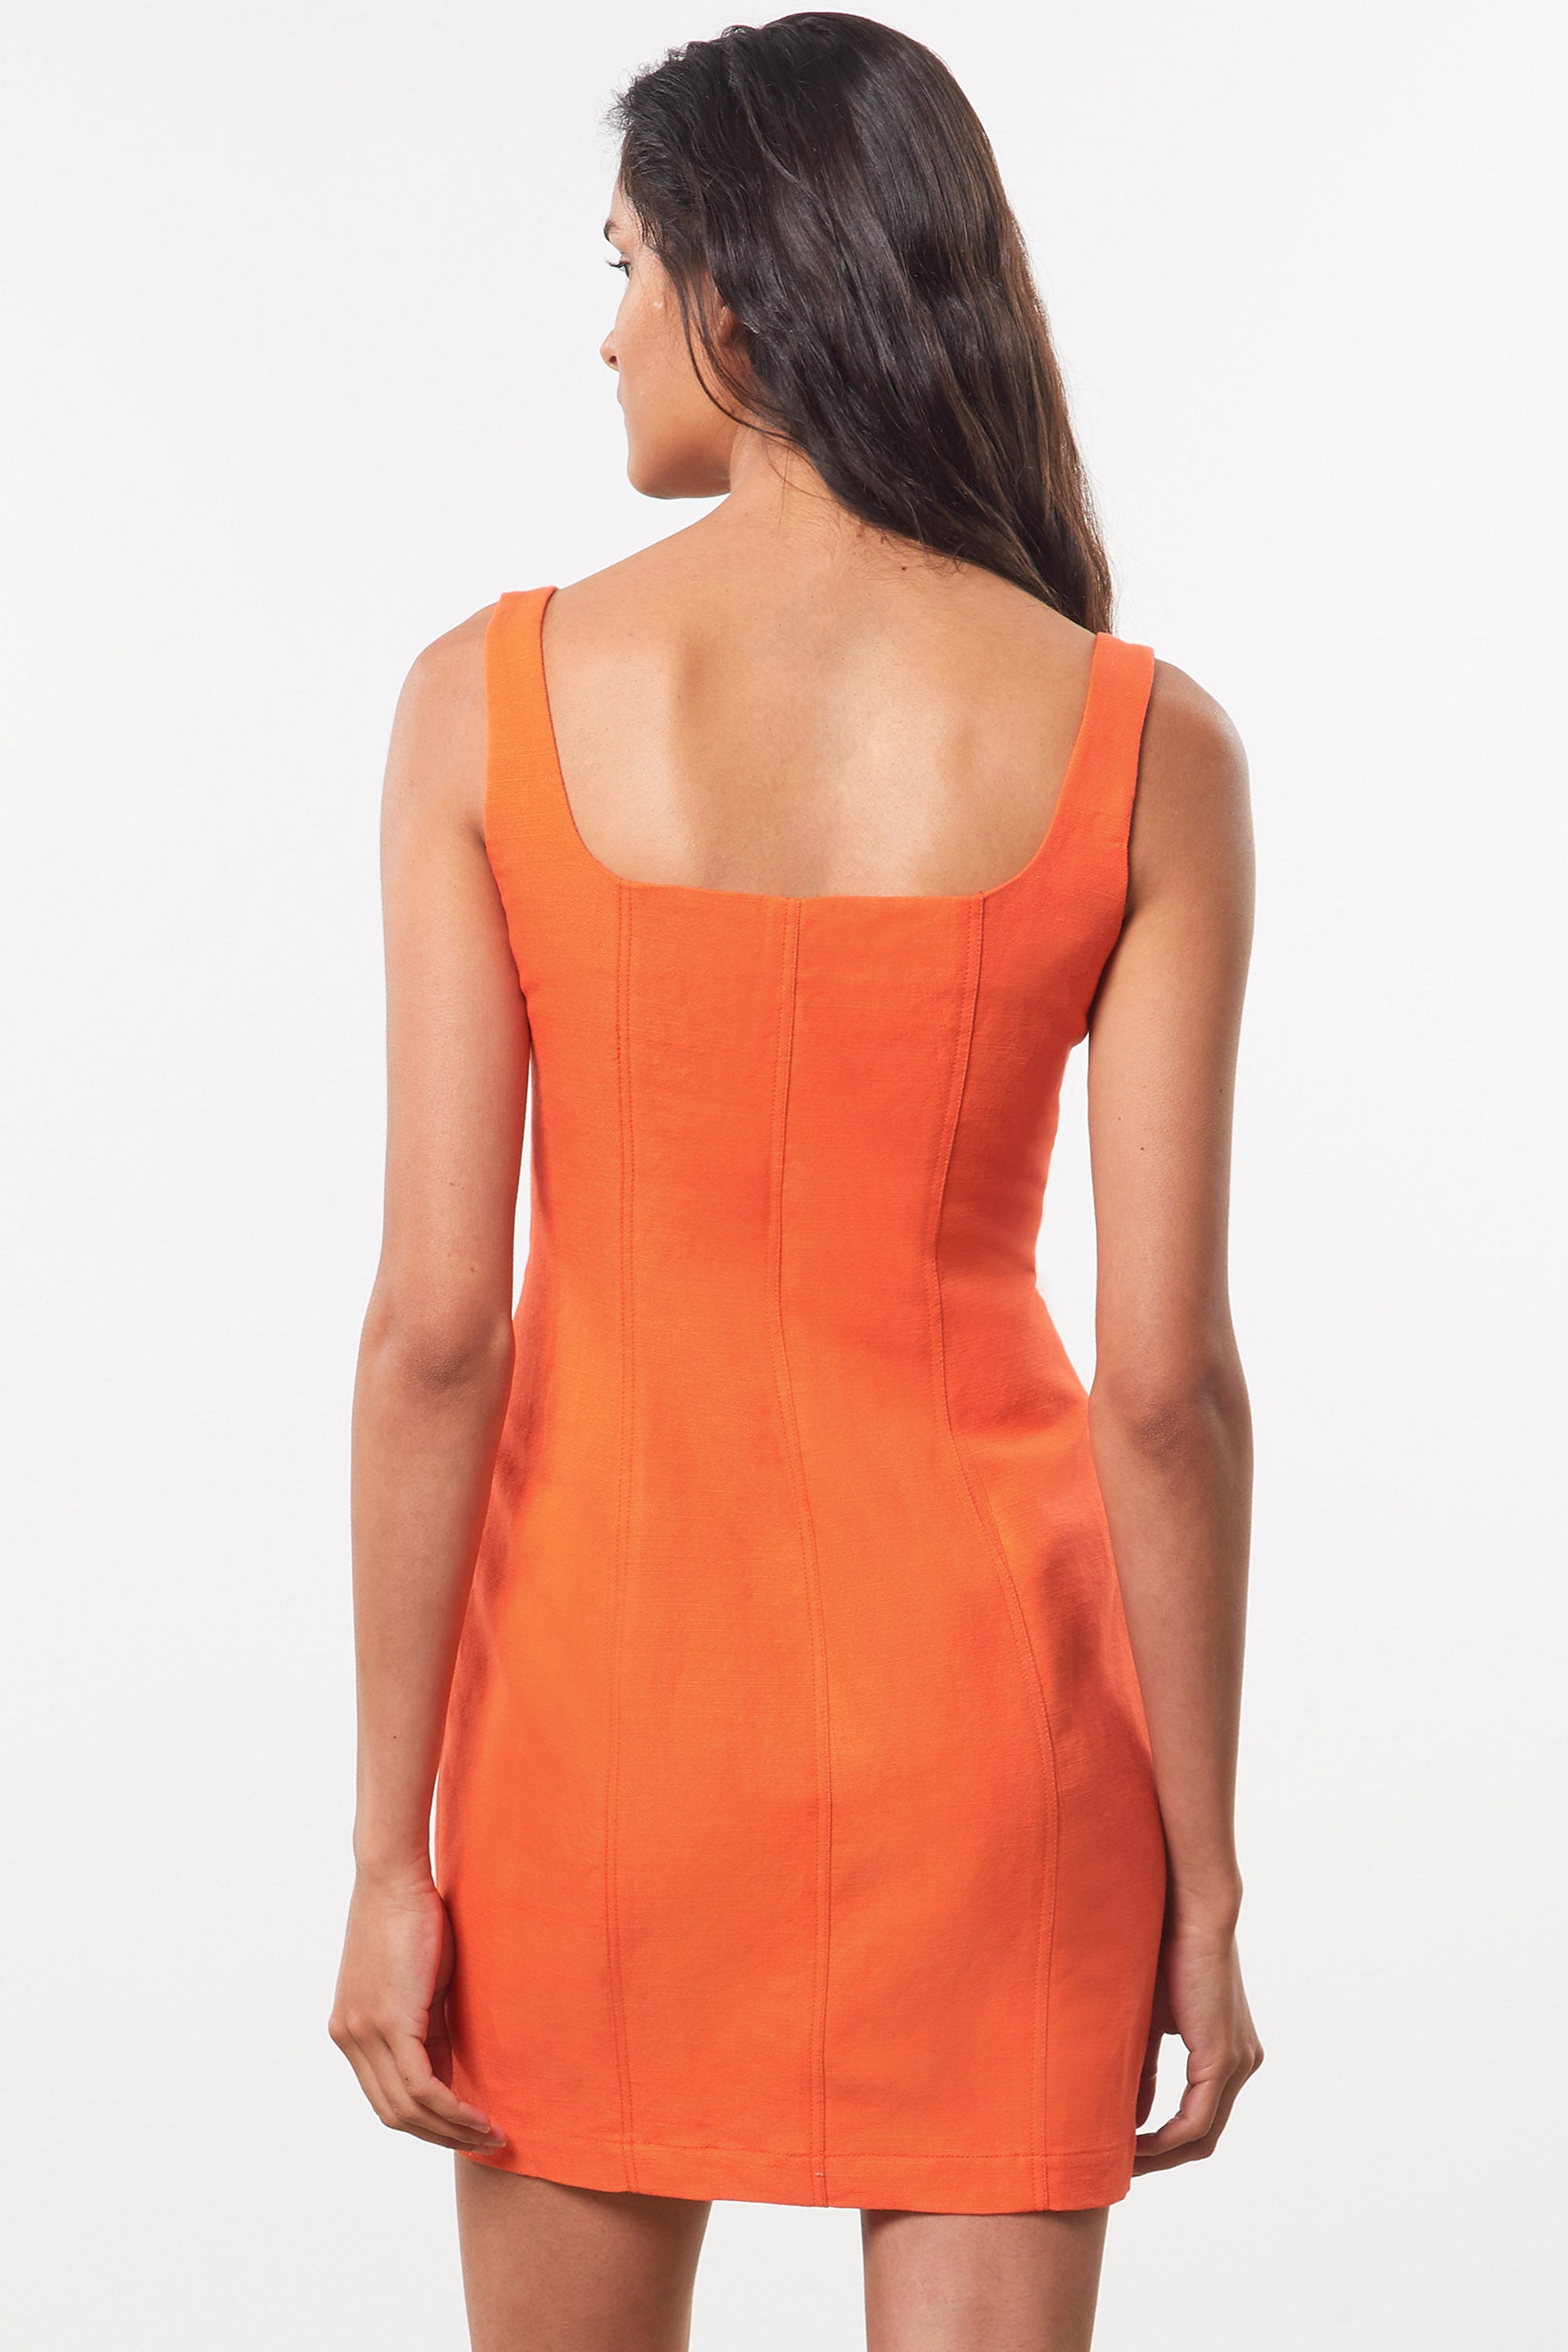 Mara Hoffman Orange Anita Dress in organic cotton and linen (back detail)